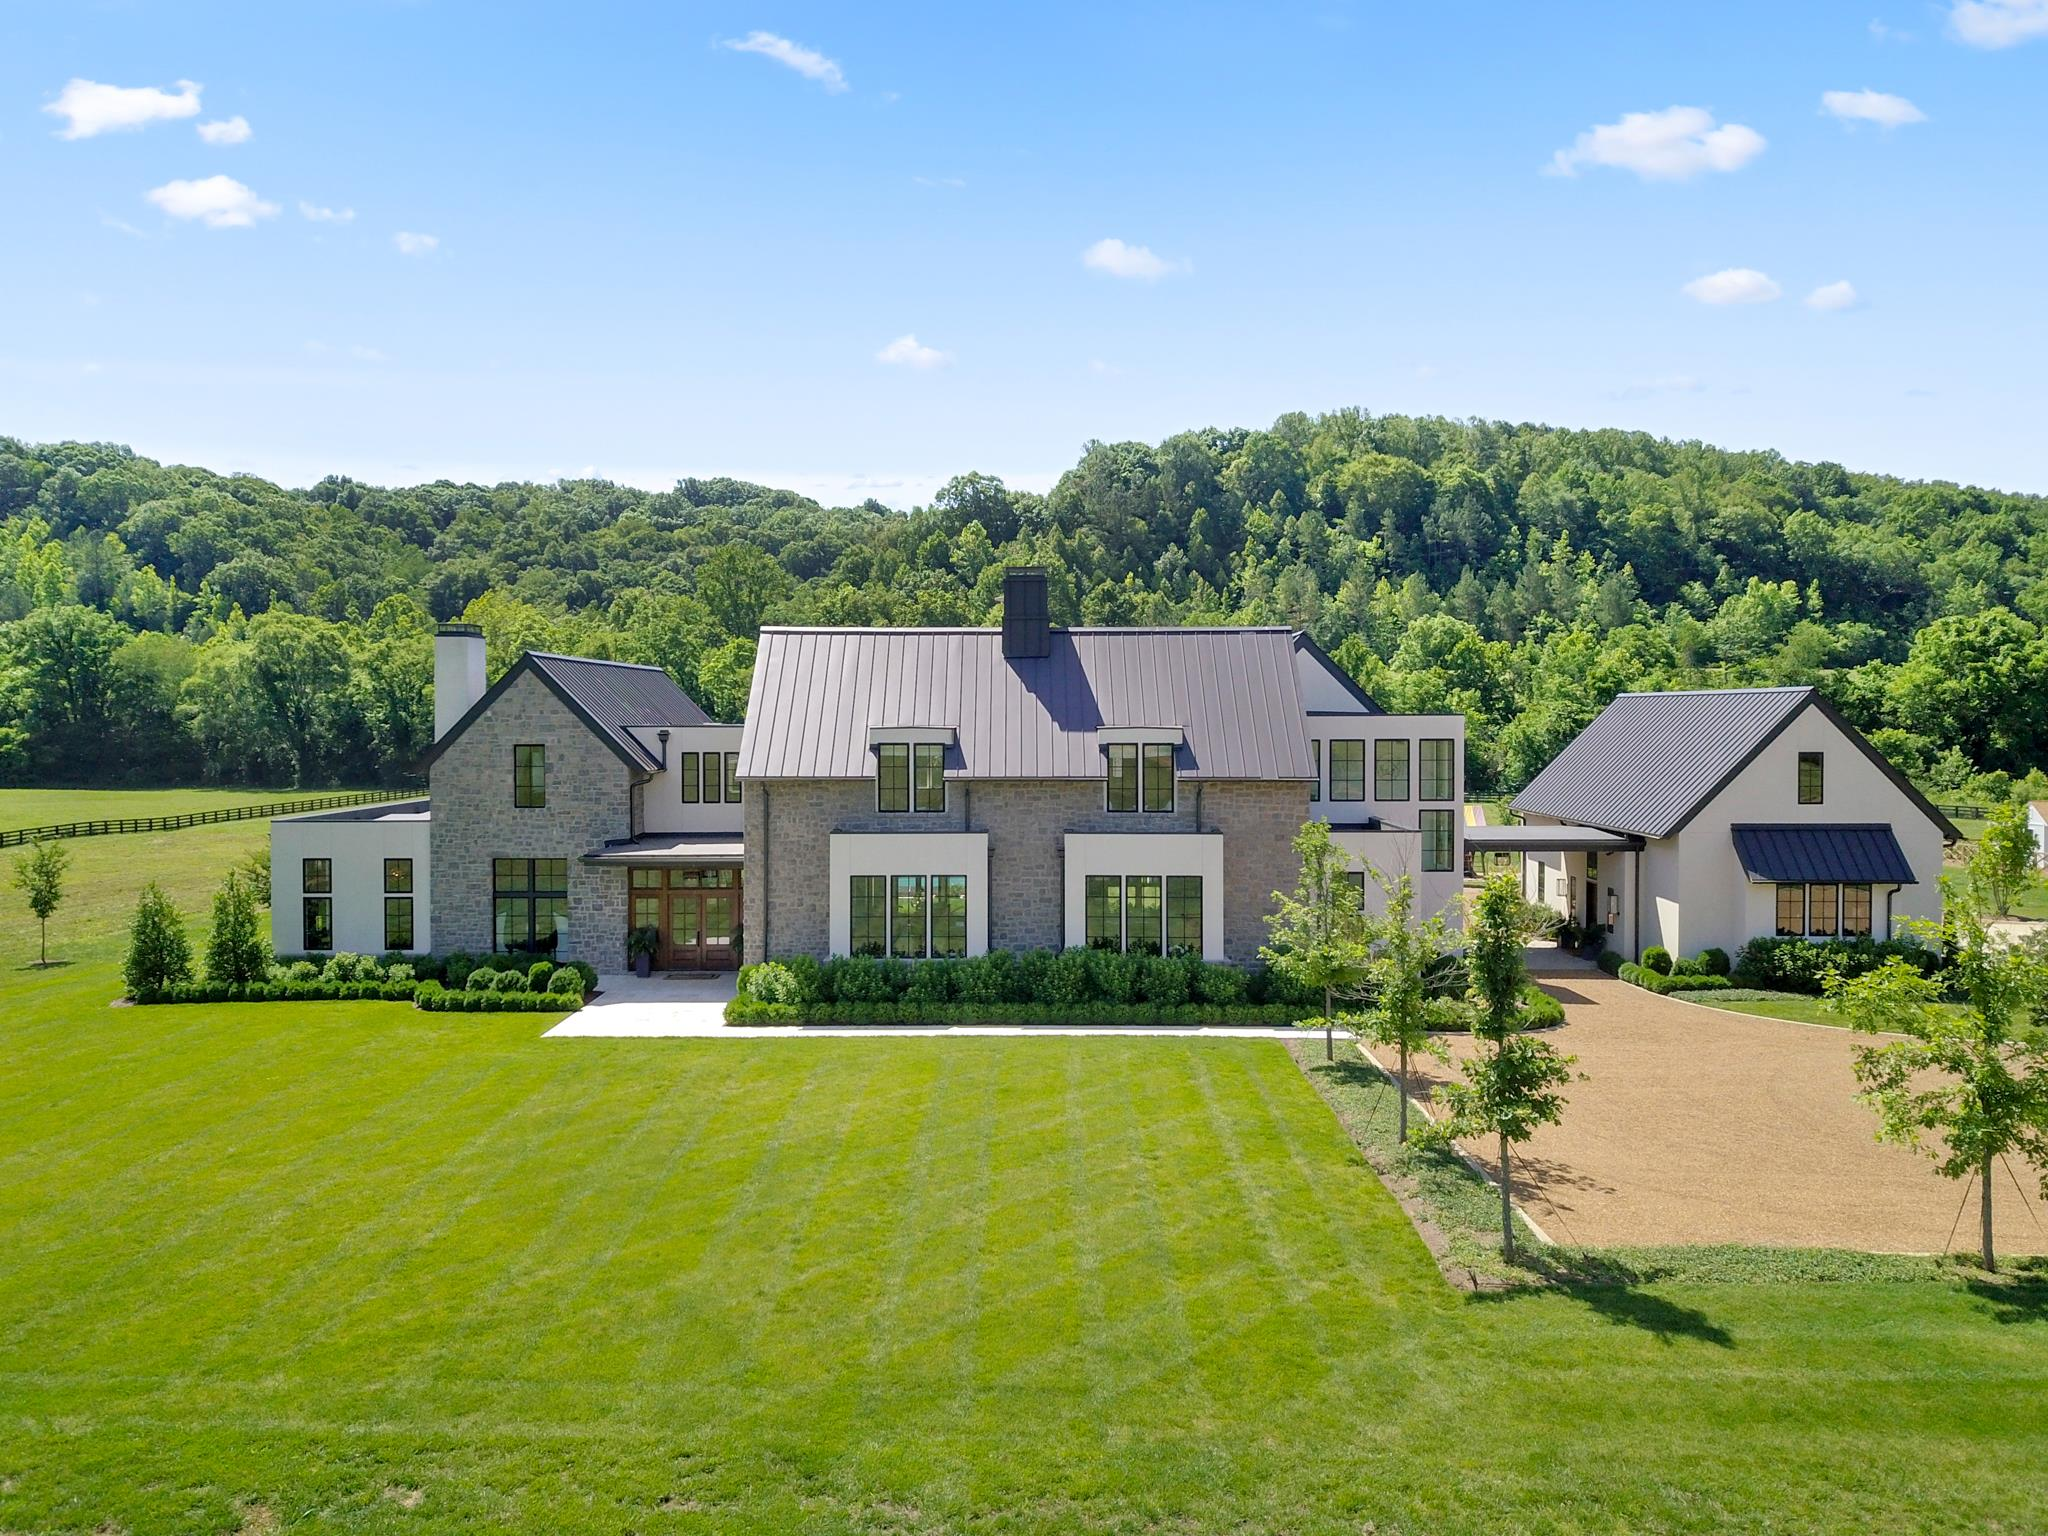 $6,425,000 - 5Br/7Ba -  for Sale in Leipers Fork, Franklin